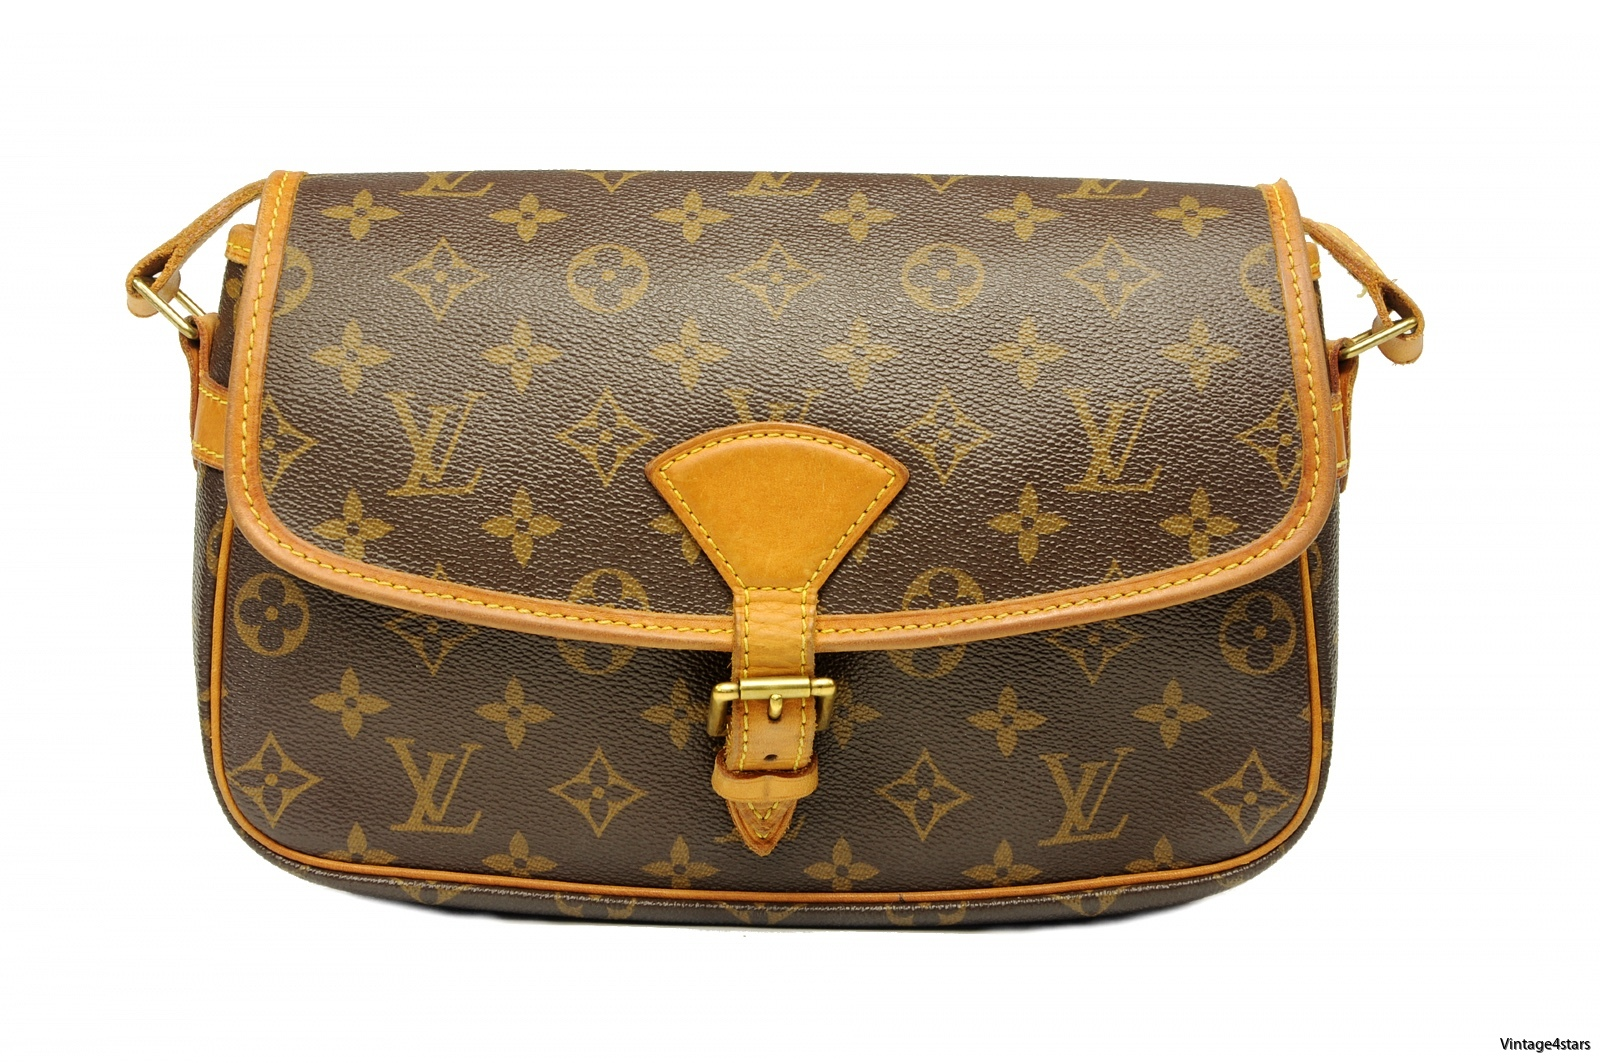 LOUIS VUITTON SOLOGNE 1